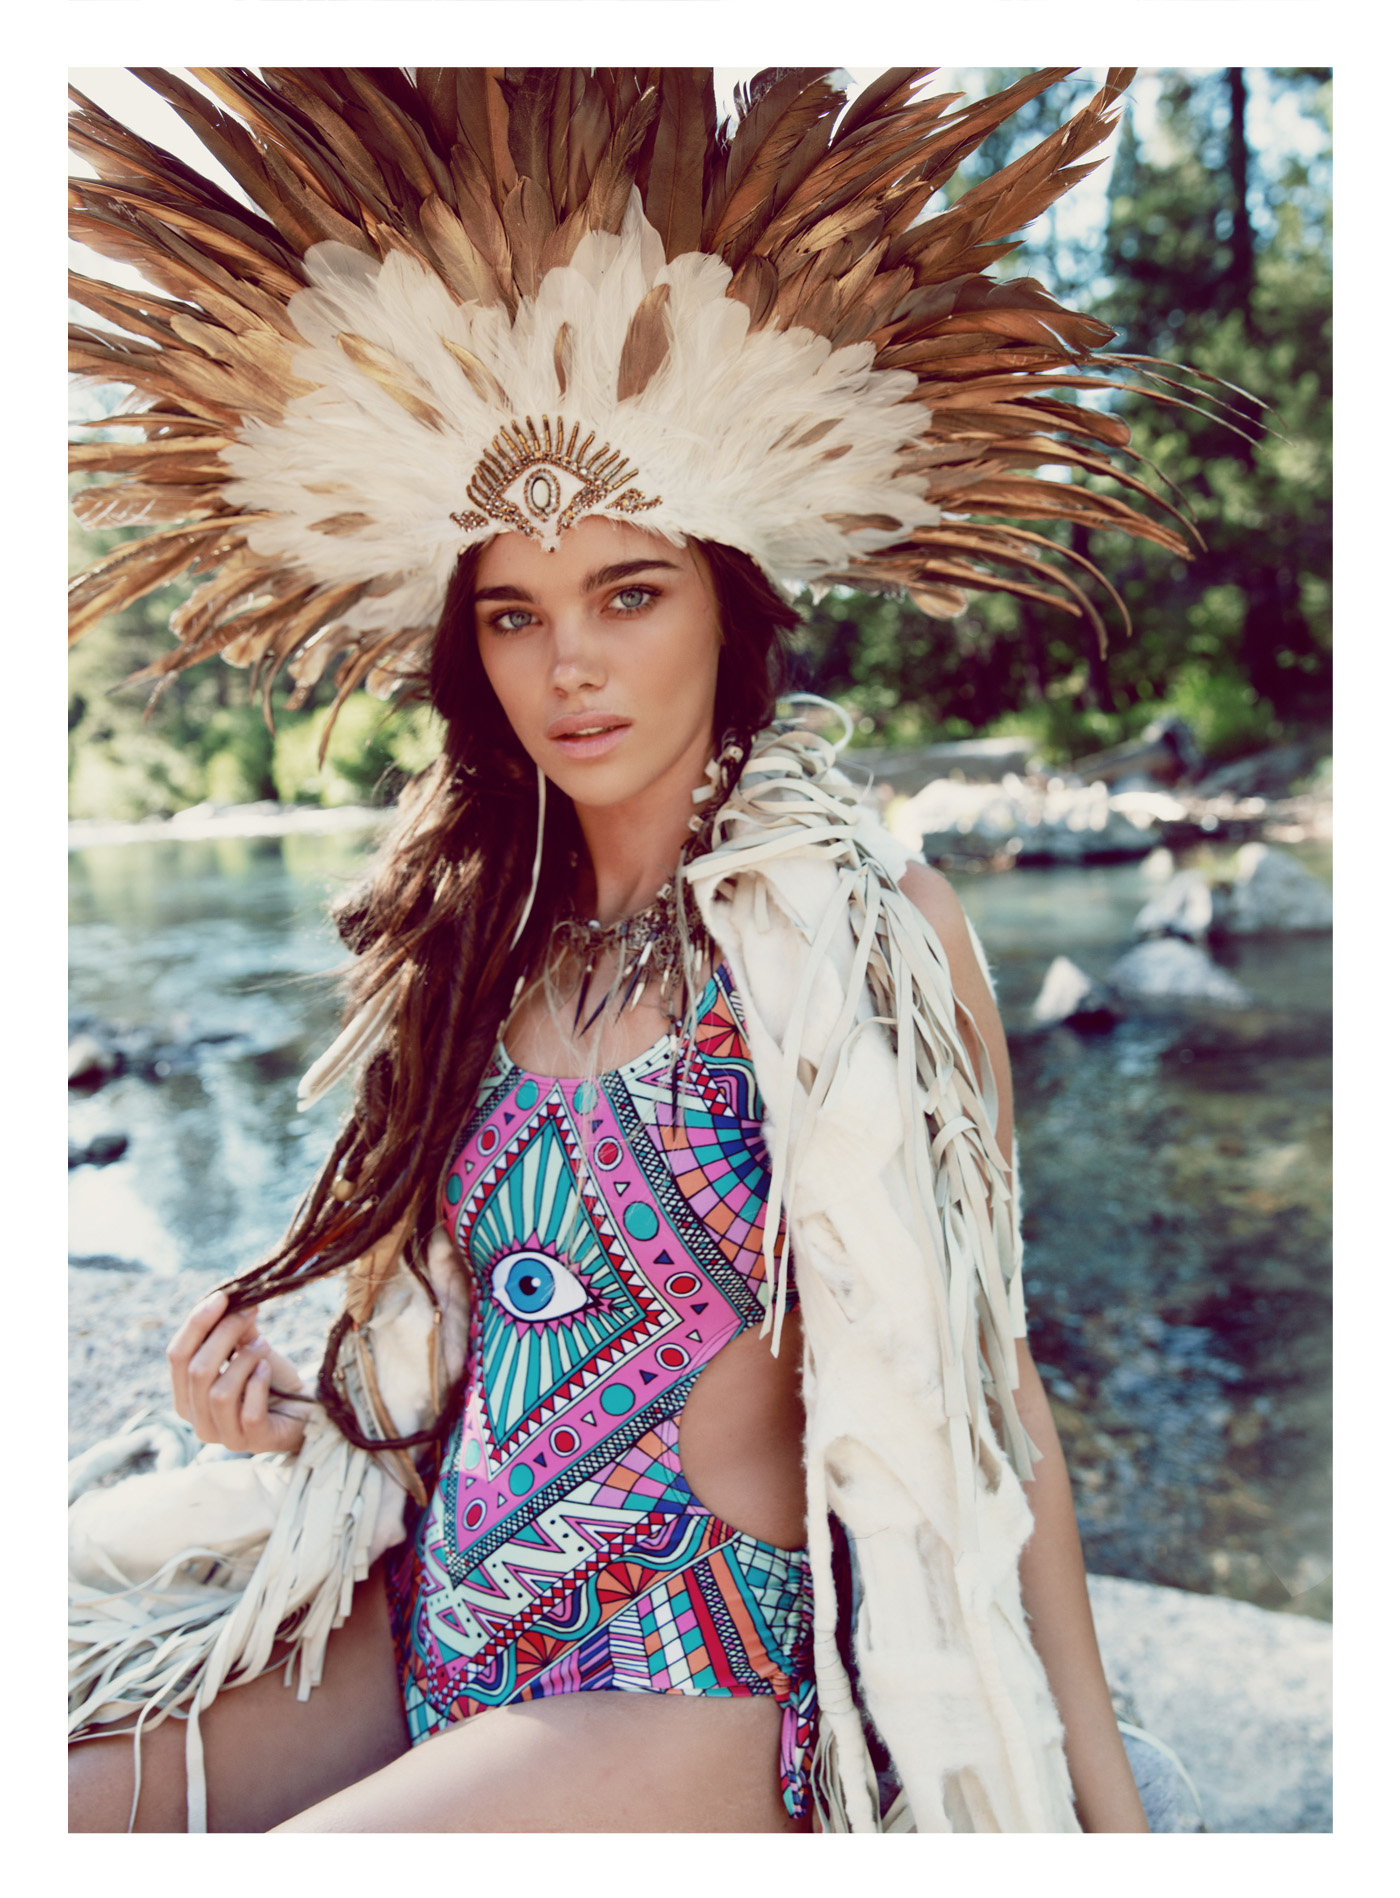 Gypsy wildfox spring lookbook new photo